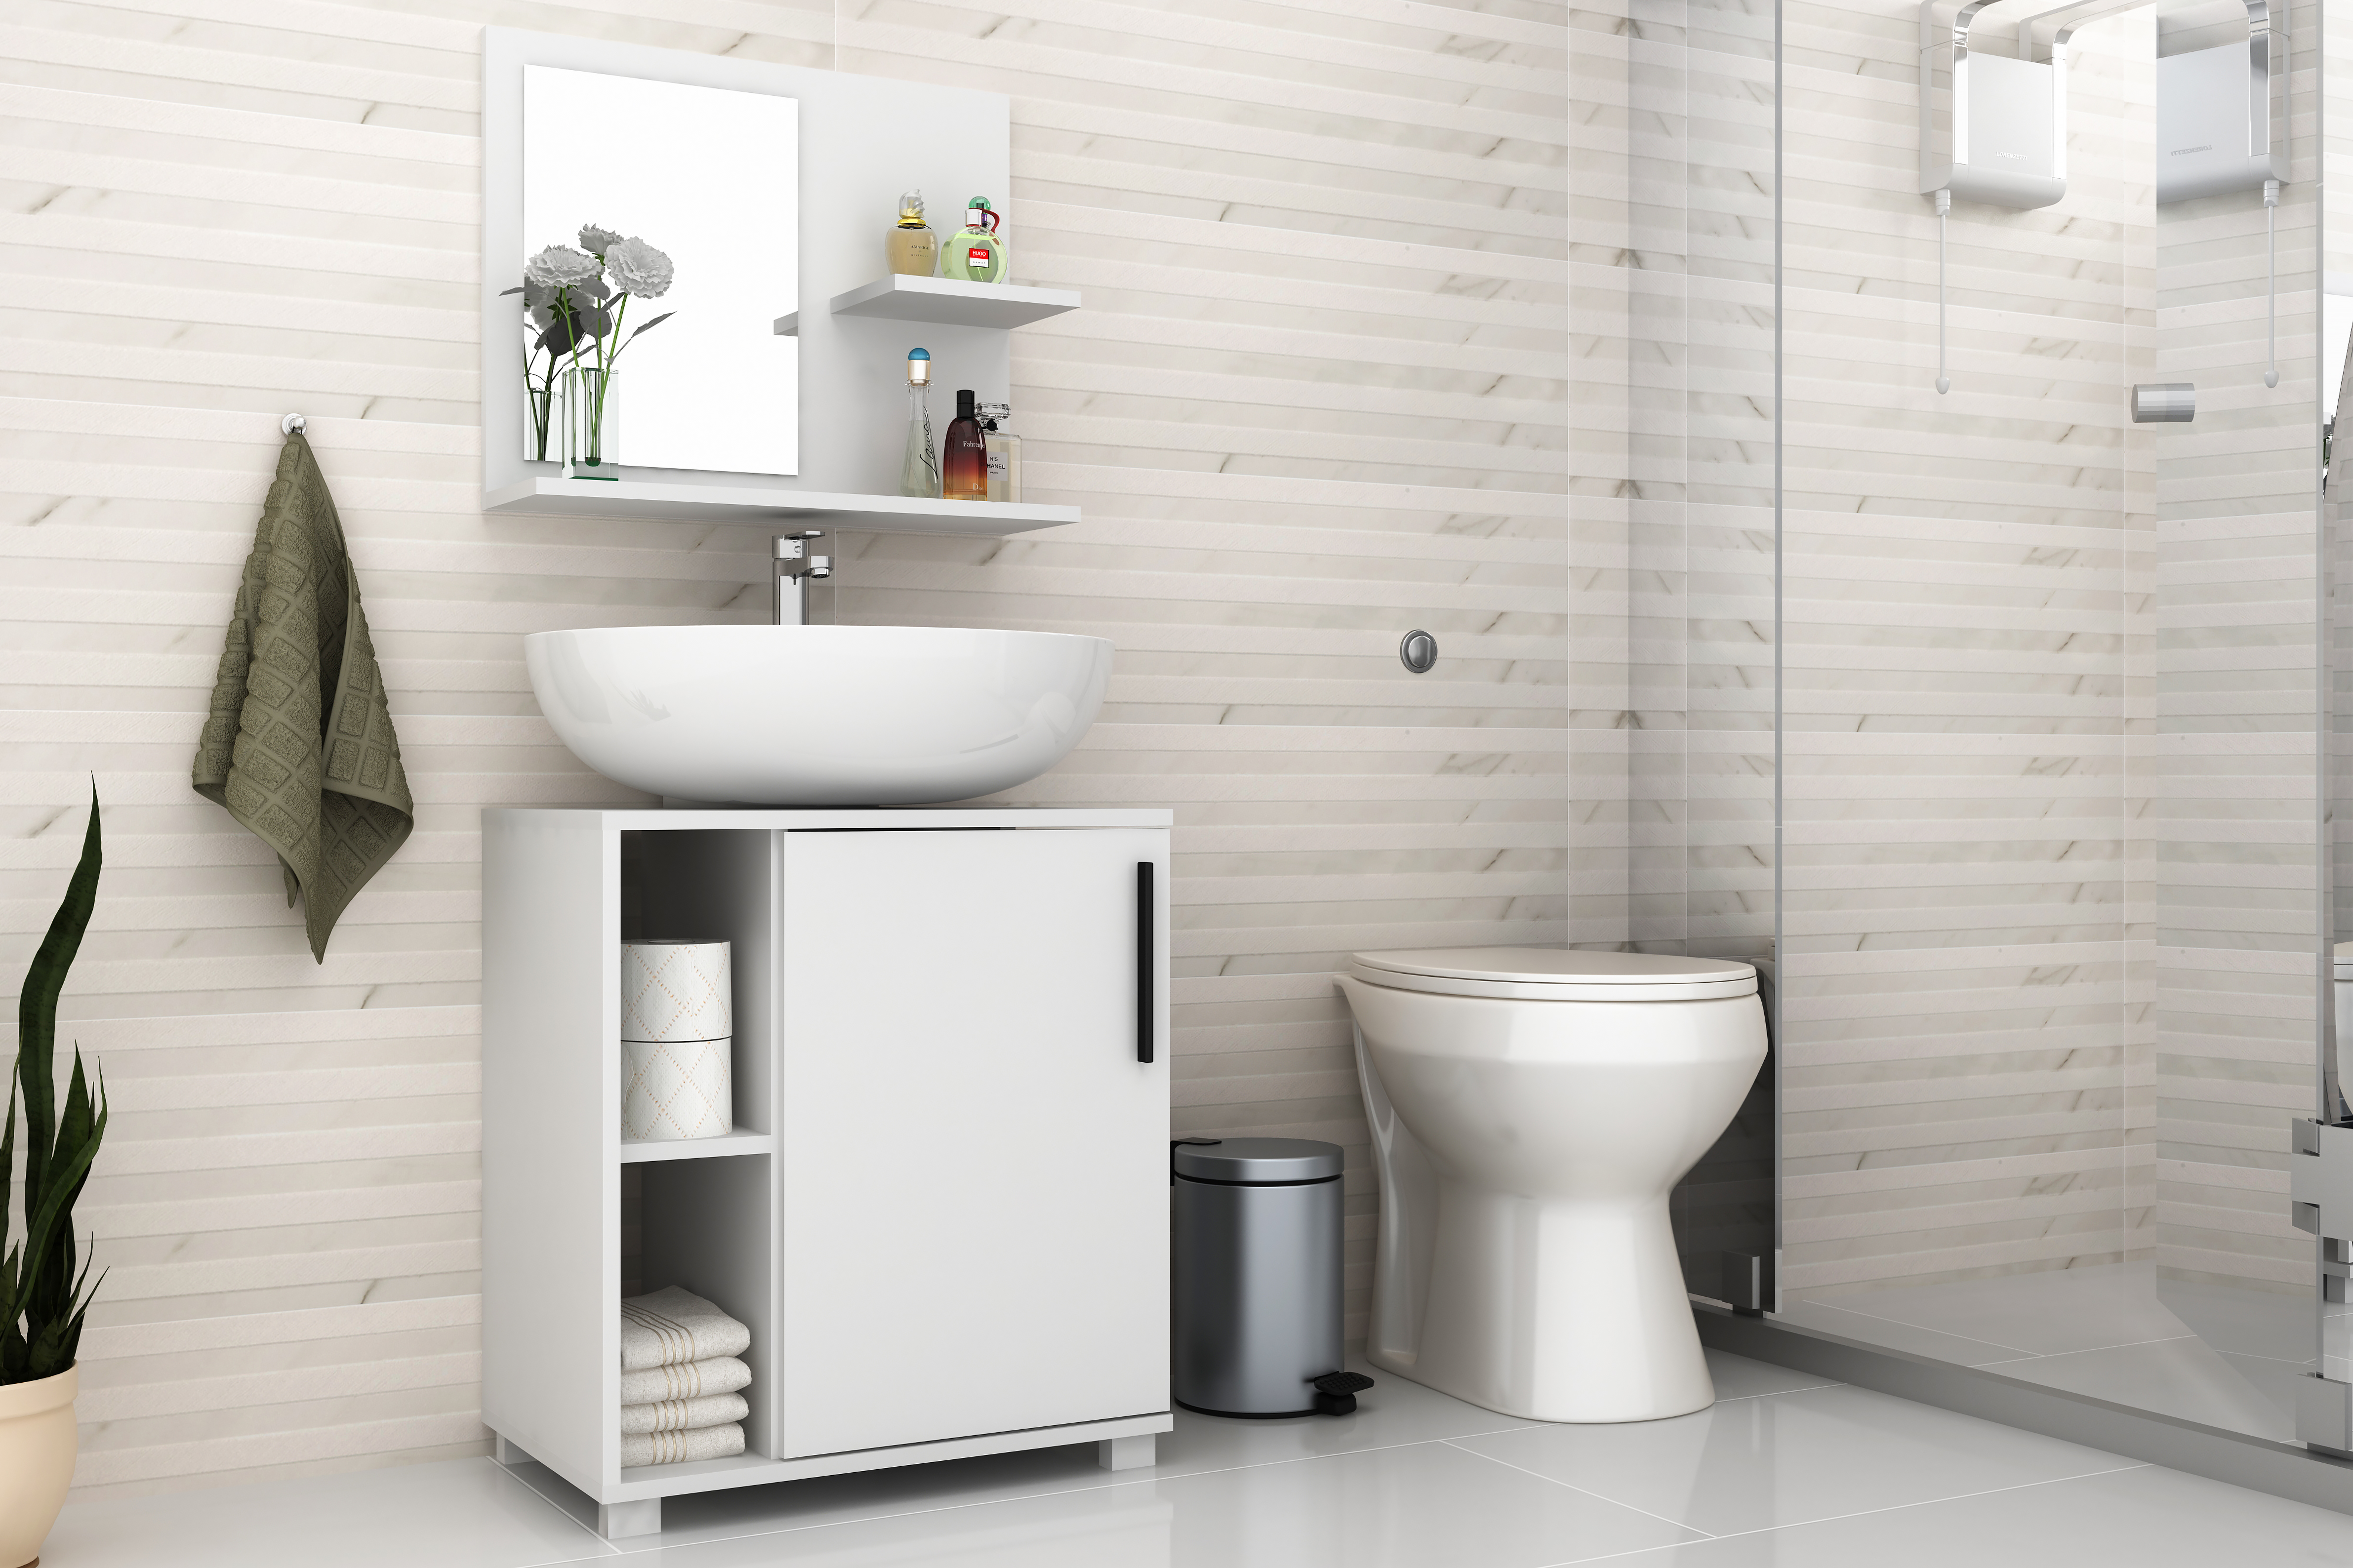 Набор BATH SET 3.0 / BBN19-06